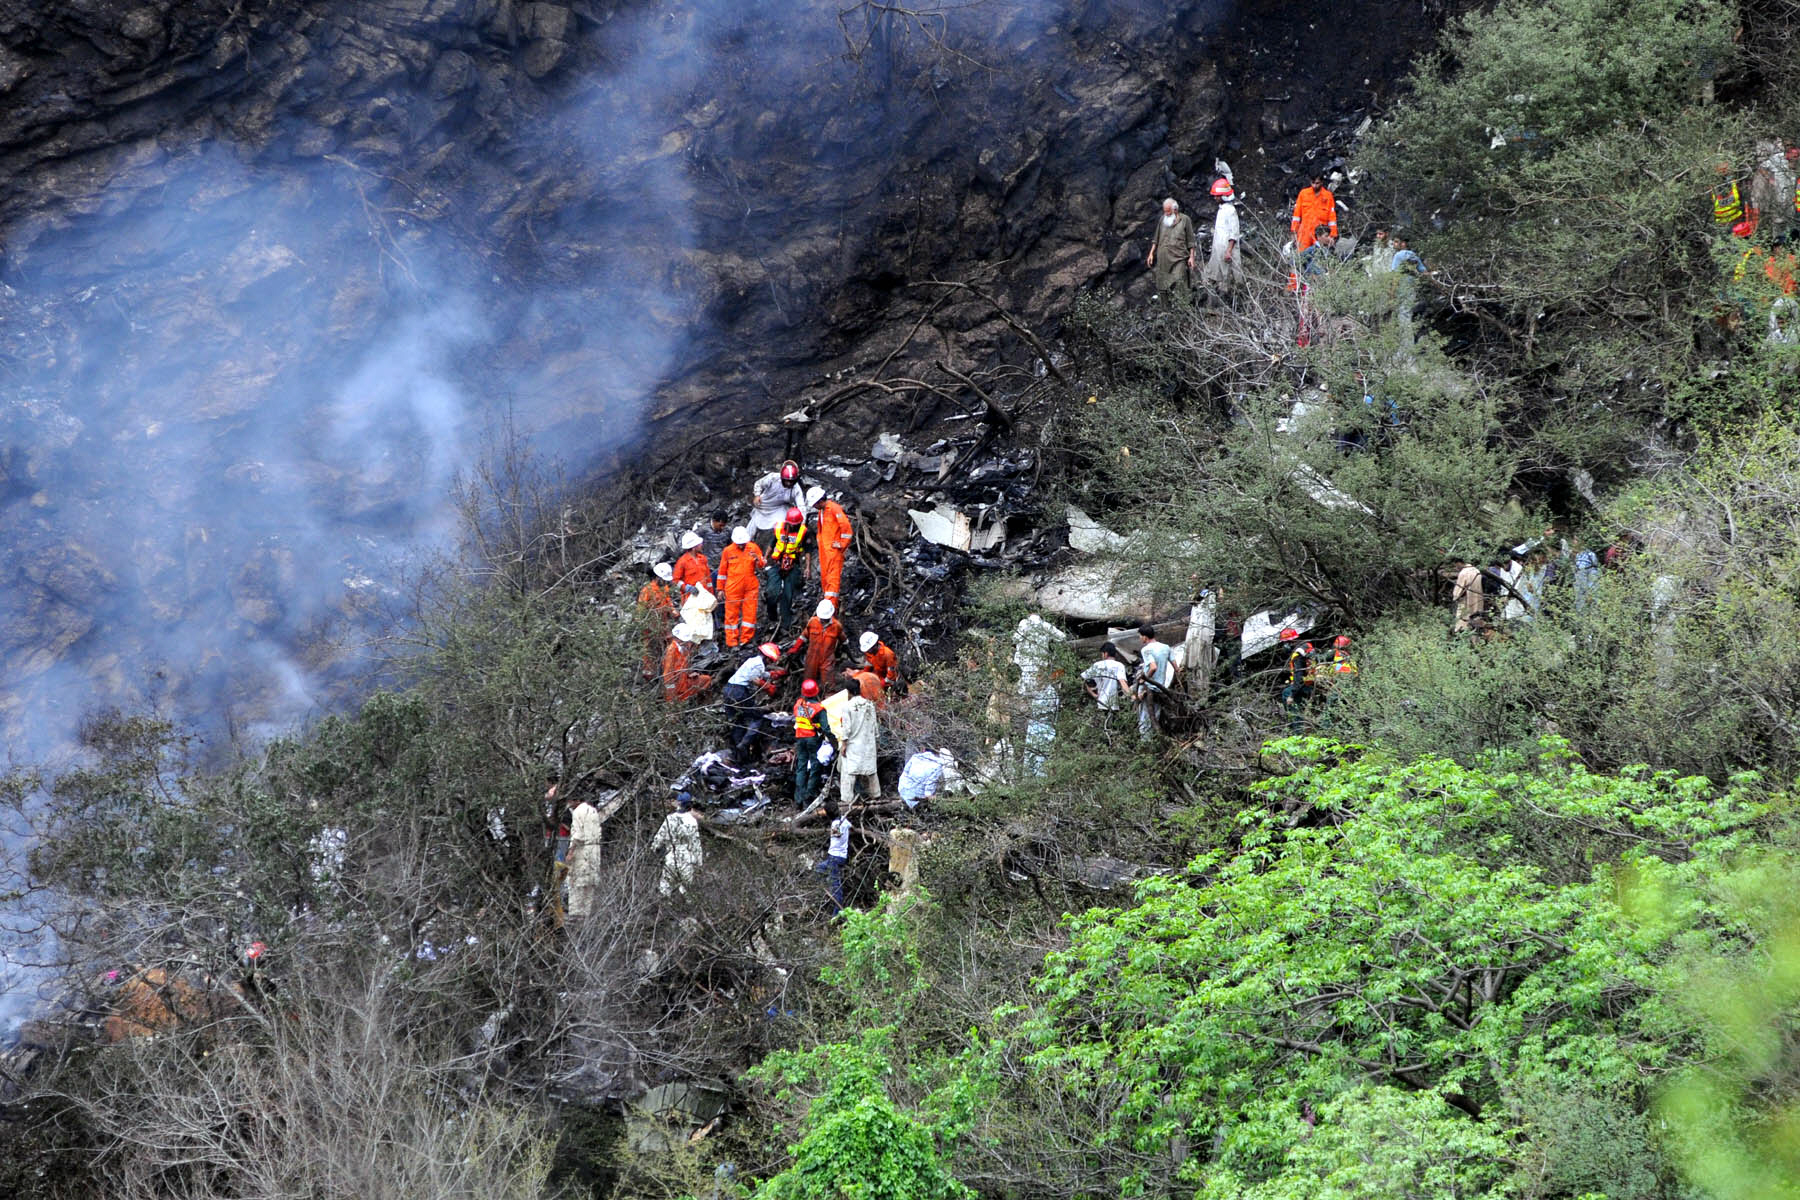 Rescue workers grow through the wreckage of the crash. PHOTO: QAZI USMAN